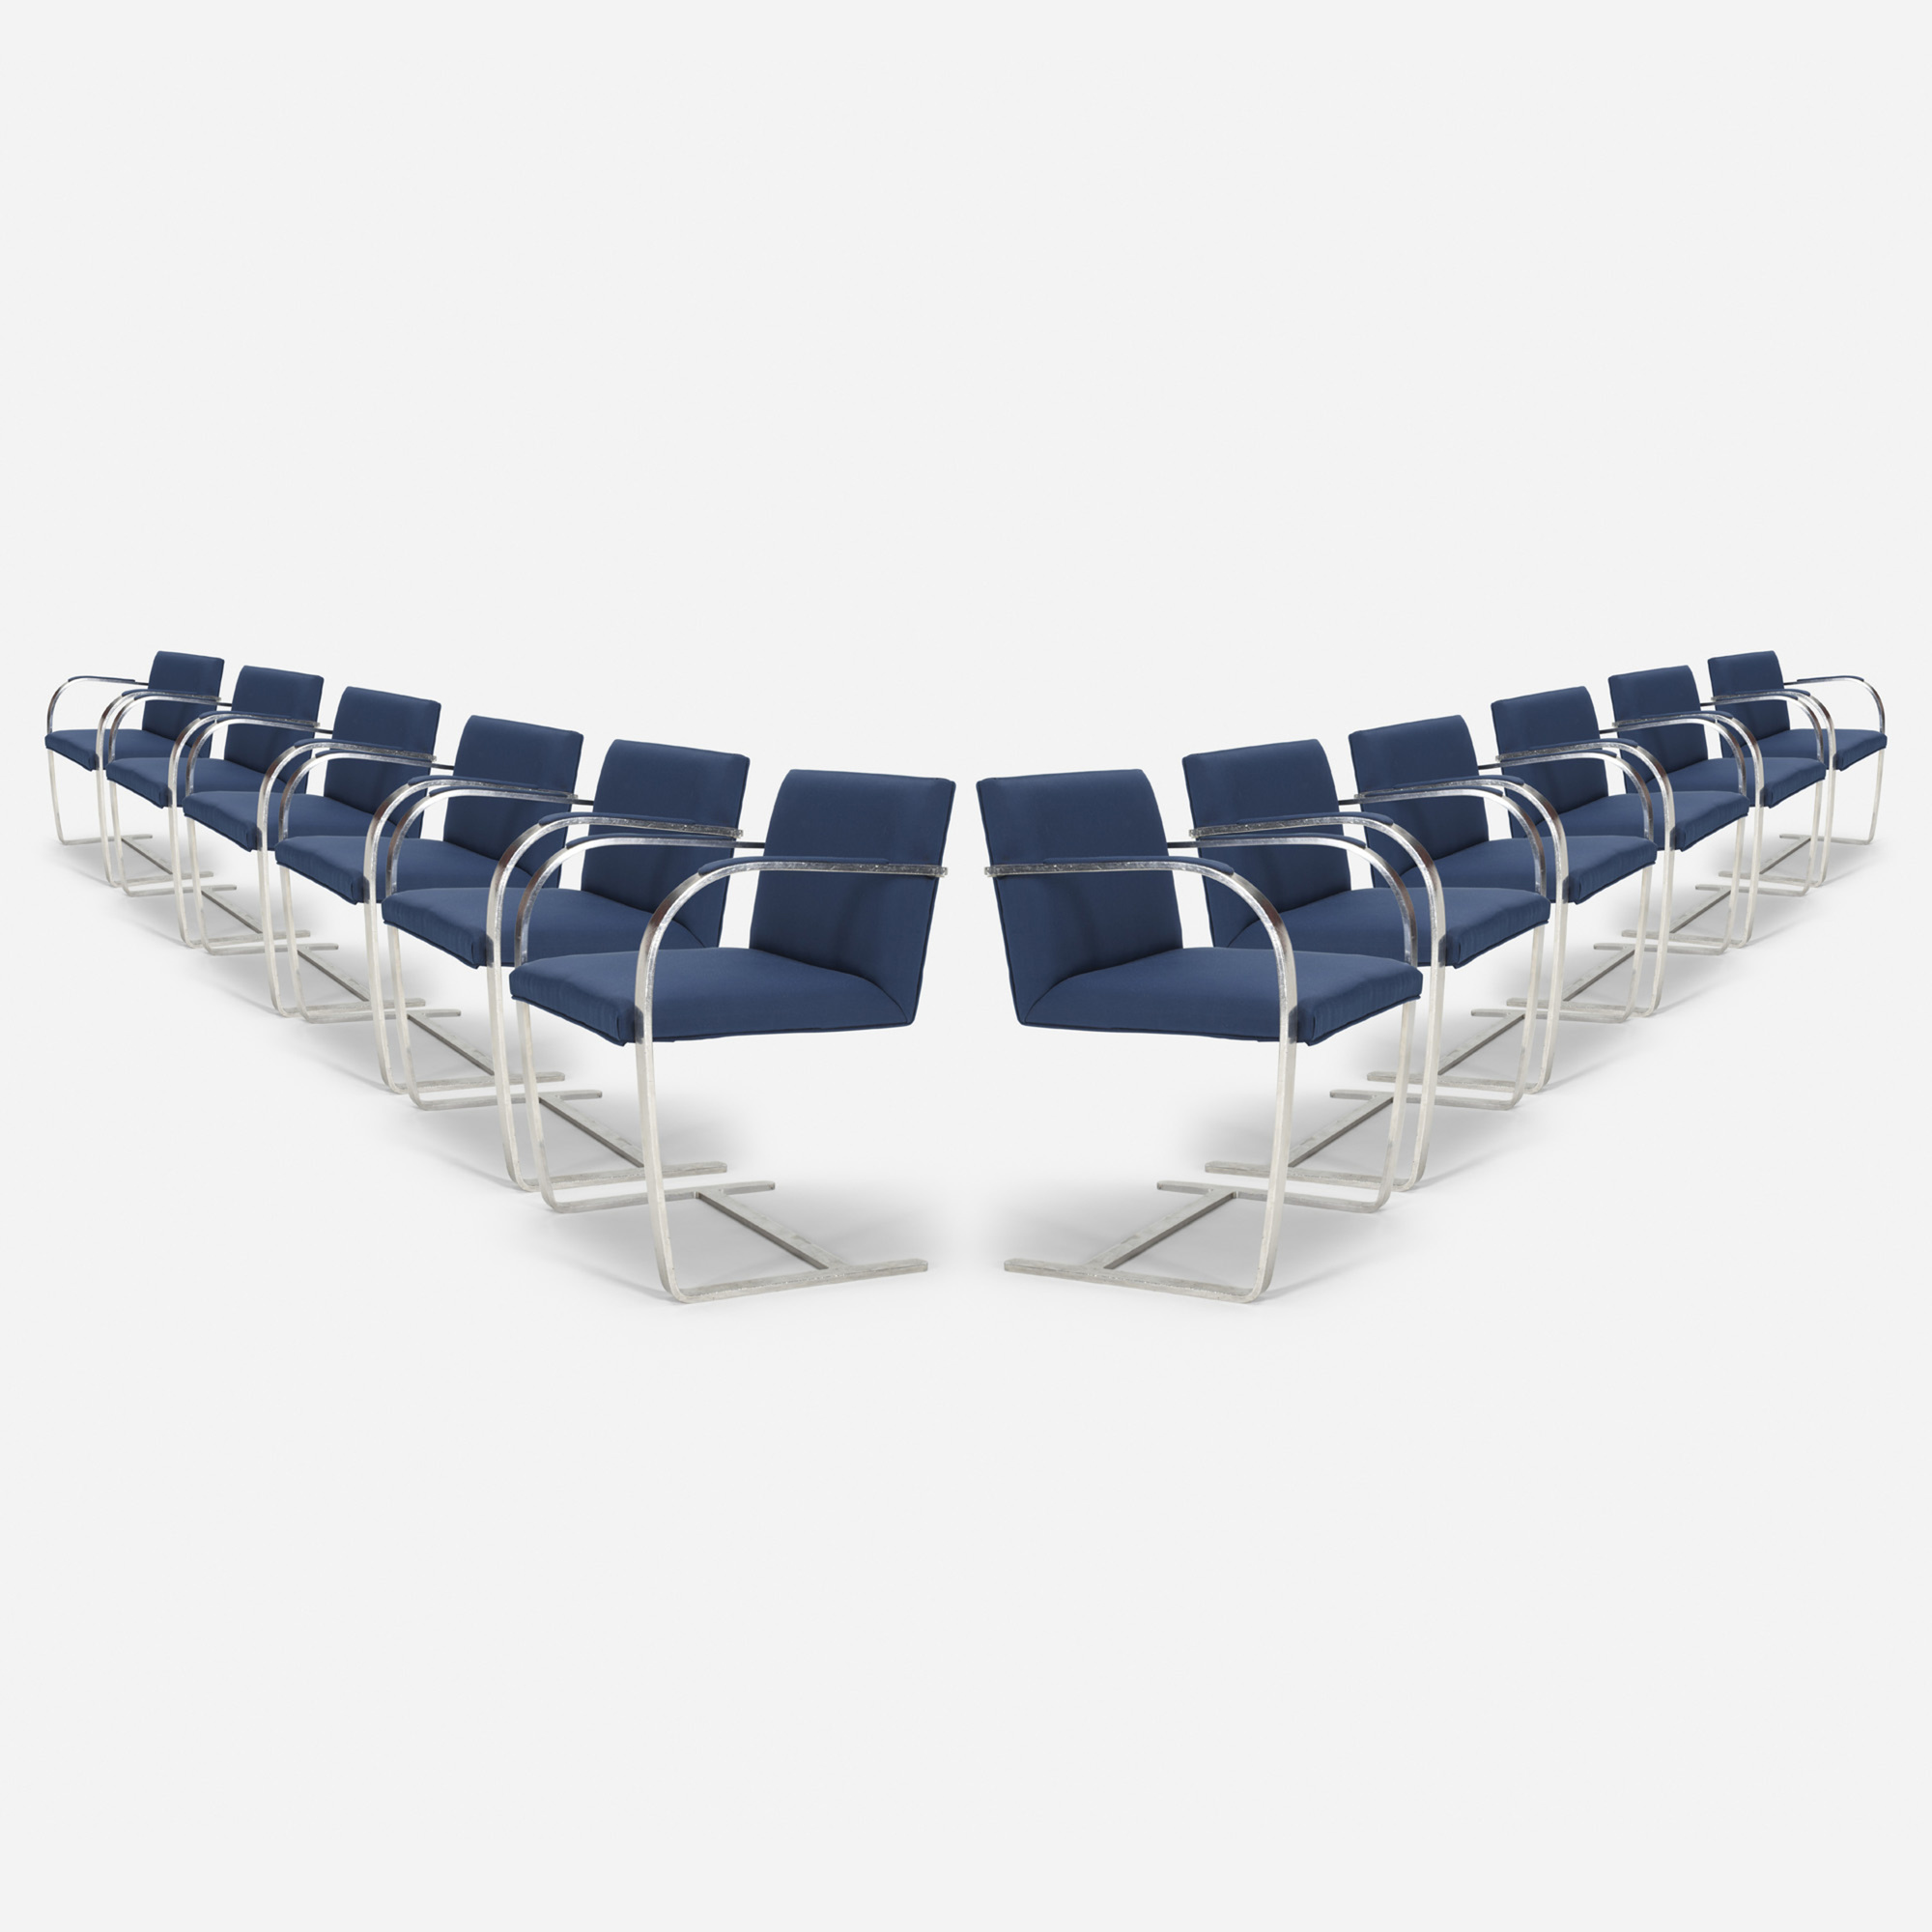 201: Ludwig Mies van der Rohe / Brno chairs from The Four Seasons, set of twelve (1 of 1)